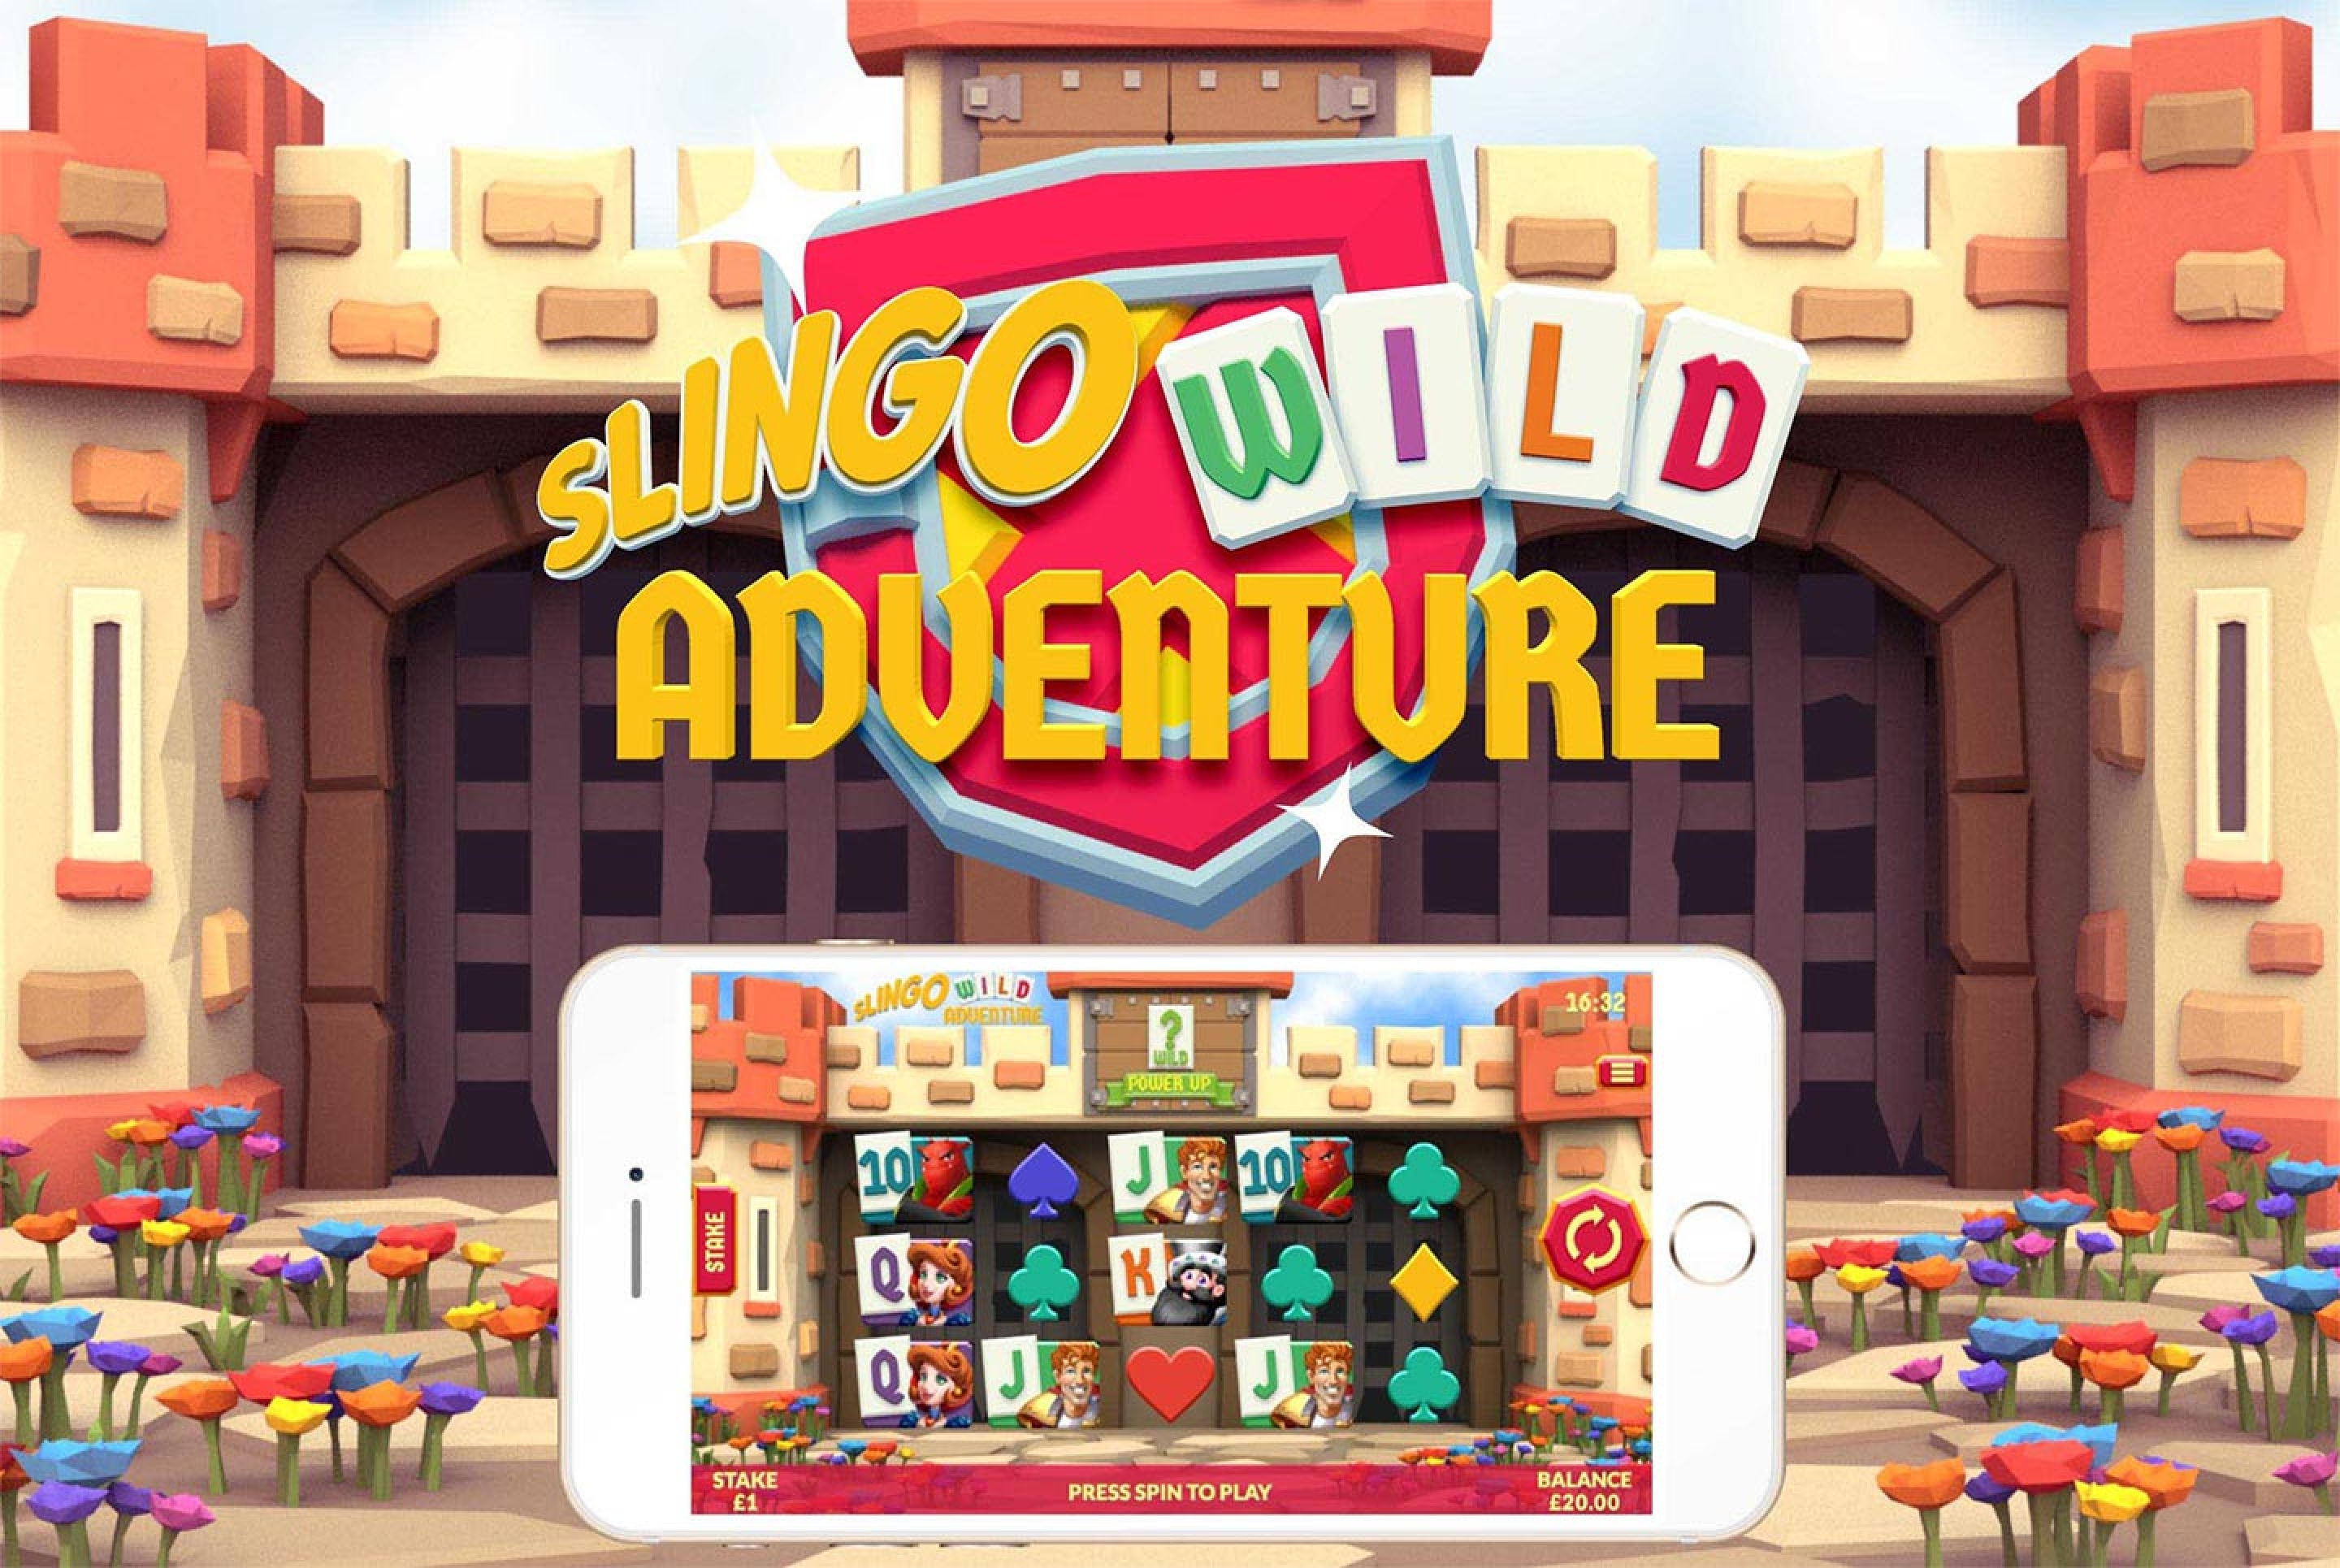 The Slingo Wild Adventure Online Slot Demo Game by Slingo